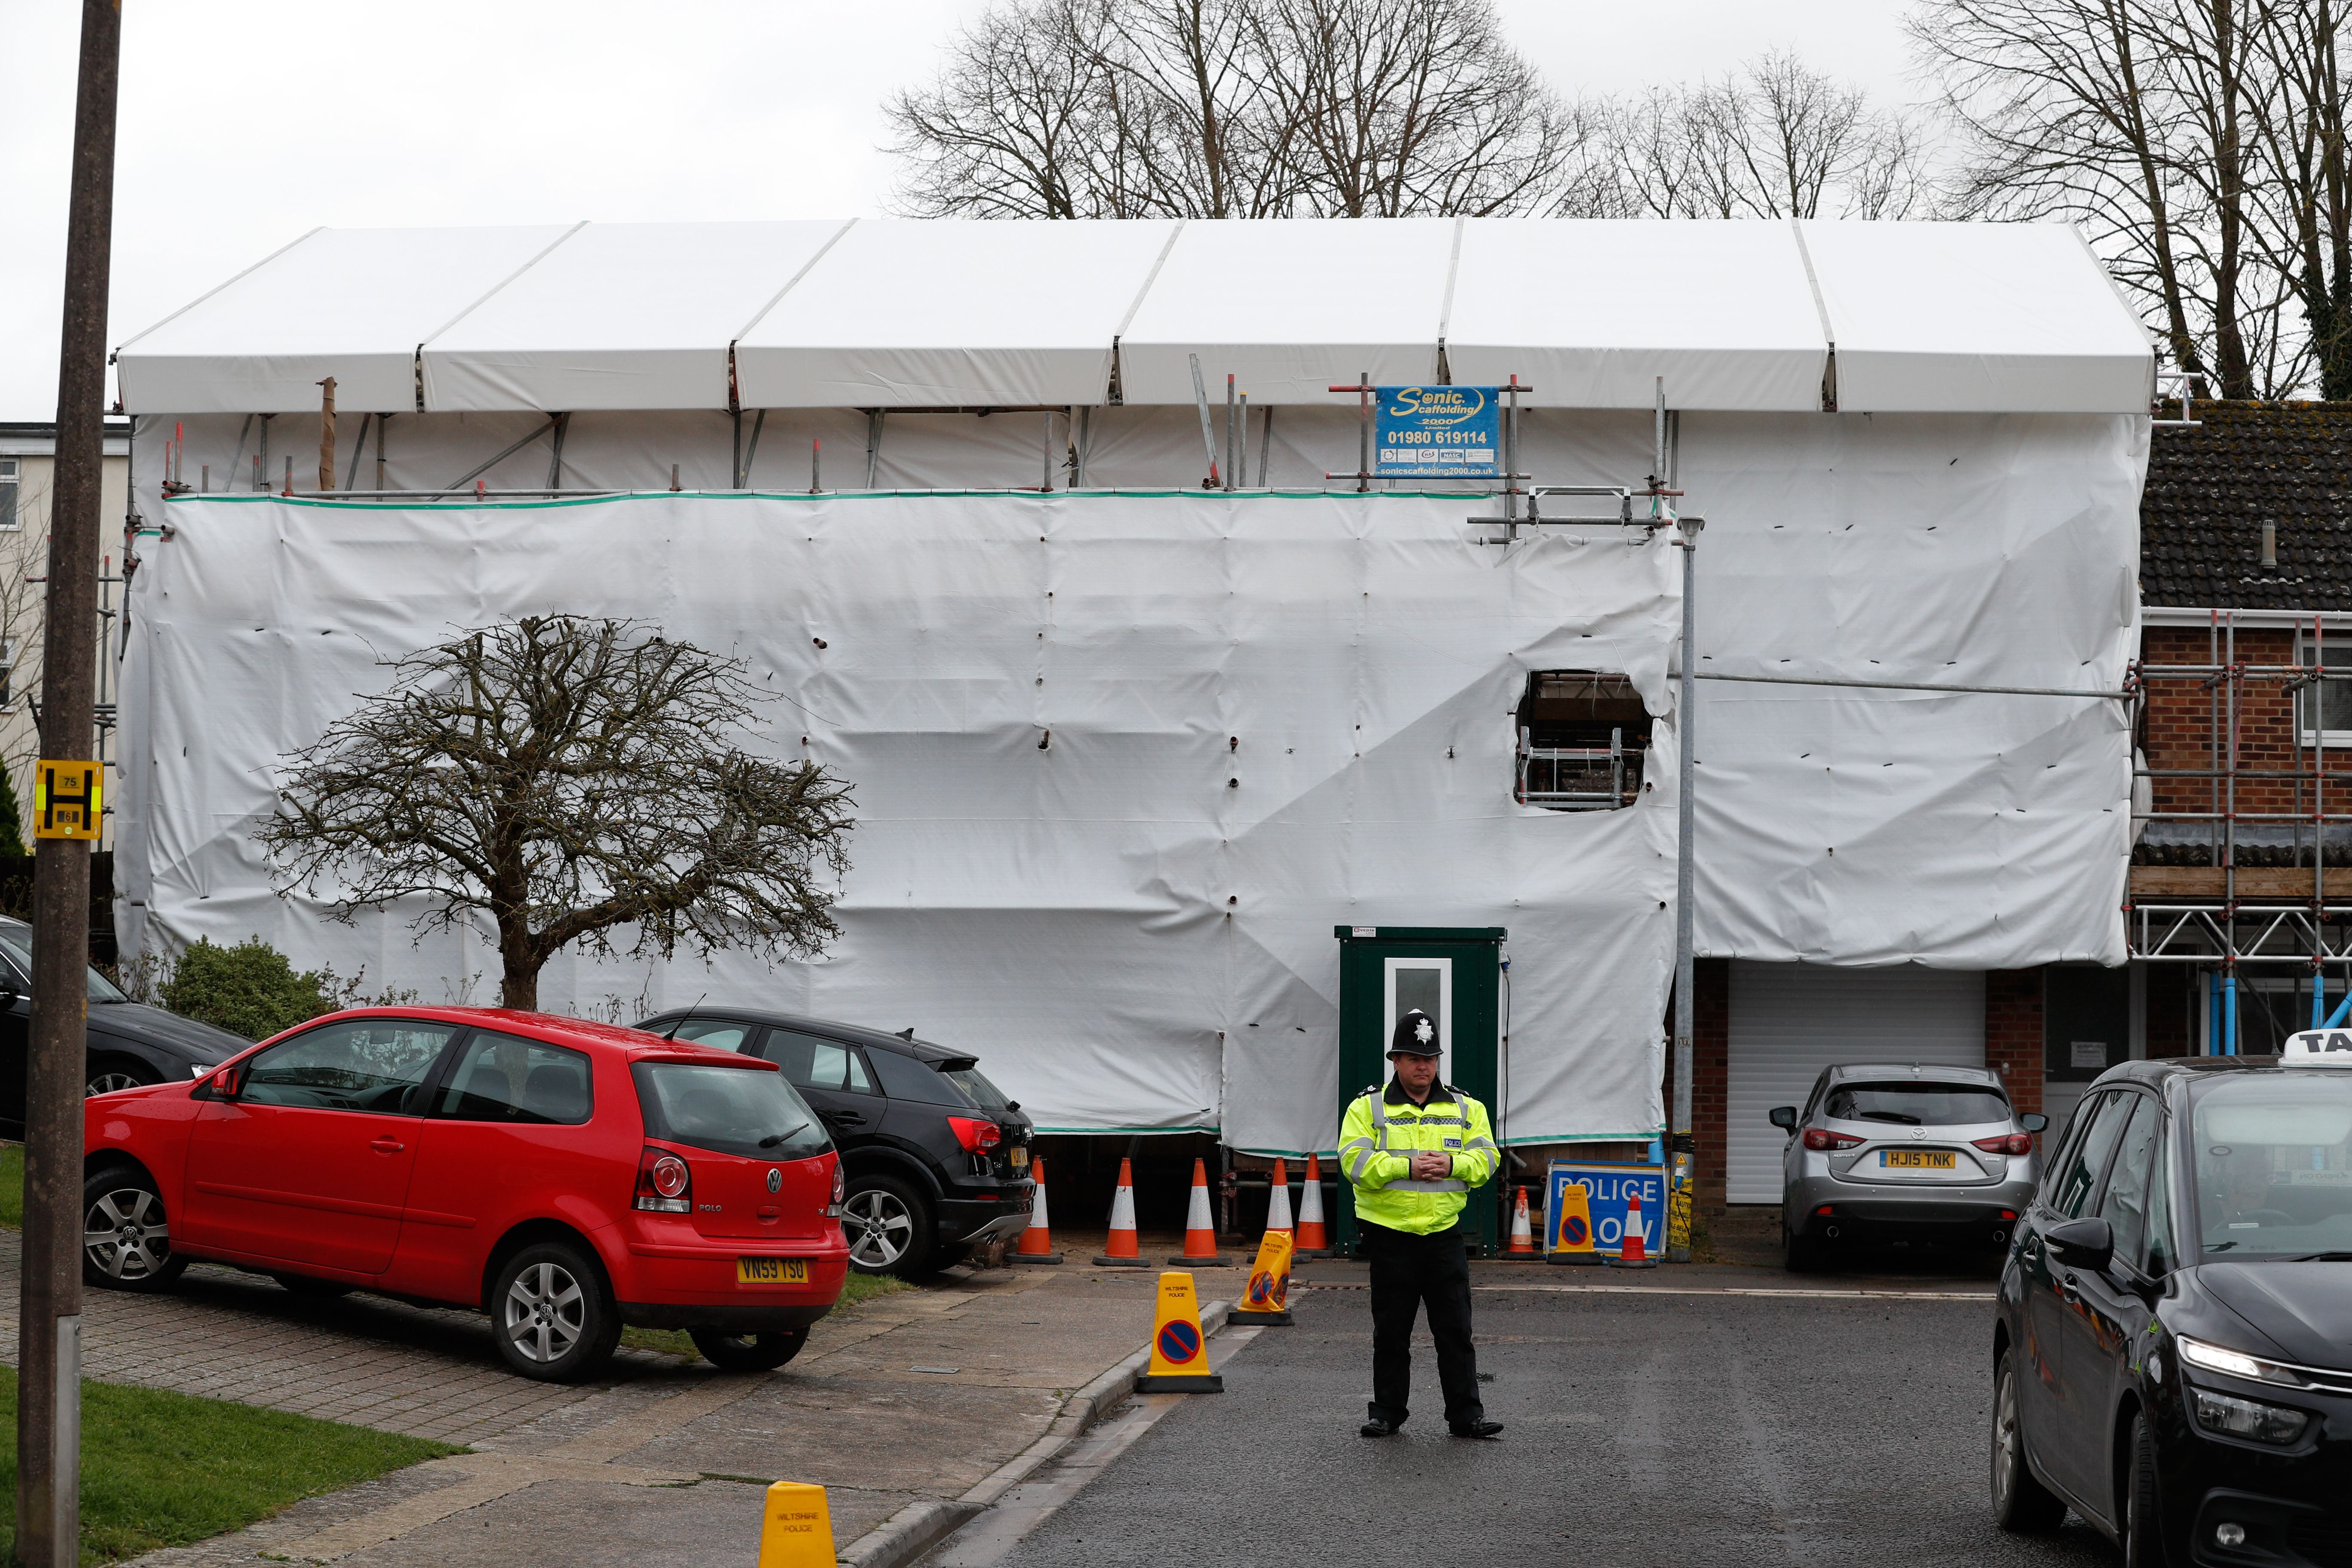 A pictures shows covered tarpaulin and scaffolding and secured by police the former home of Russian ex-spy Sergei Skripal in Salisbury, southern England on March 4, 2019 exactly one year to the day since the assissination attempt on Skripal with the nerve agent Novichok that seriously injured him and his daughter Yulia. (Photo credit should read ADRIAN DENNIS/AFP/Getty Images)